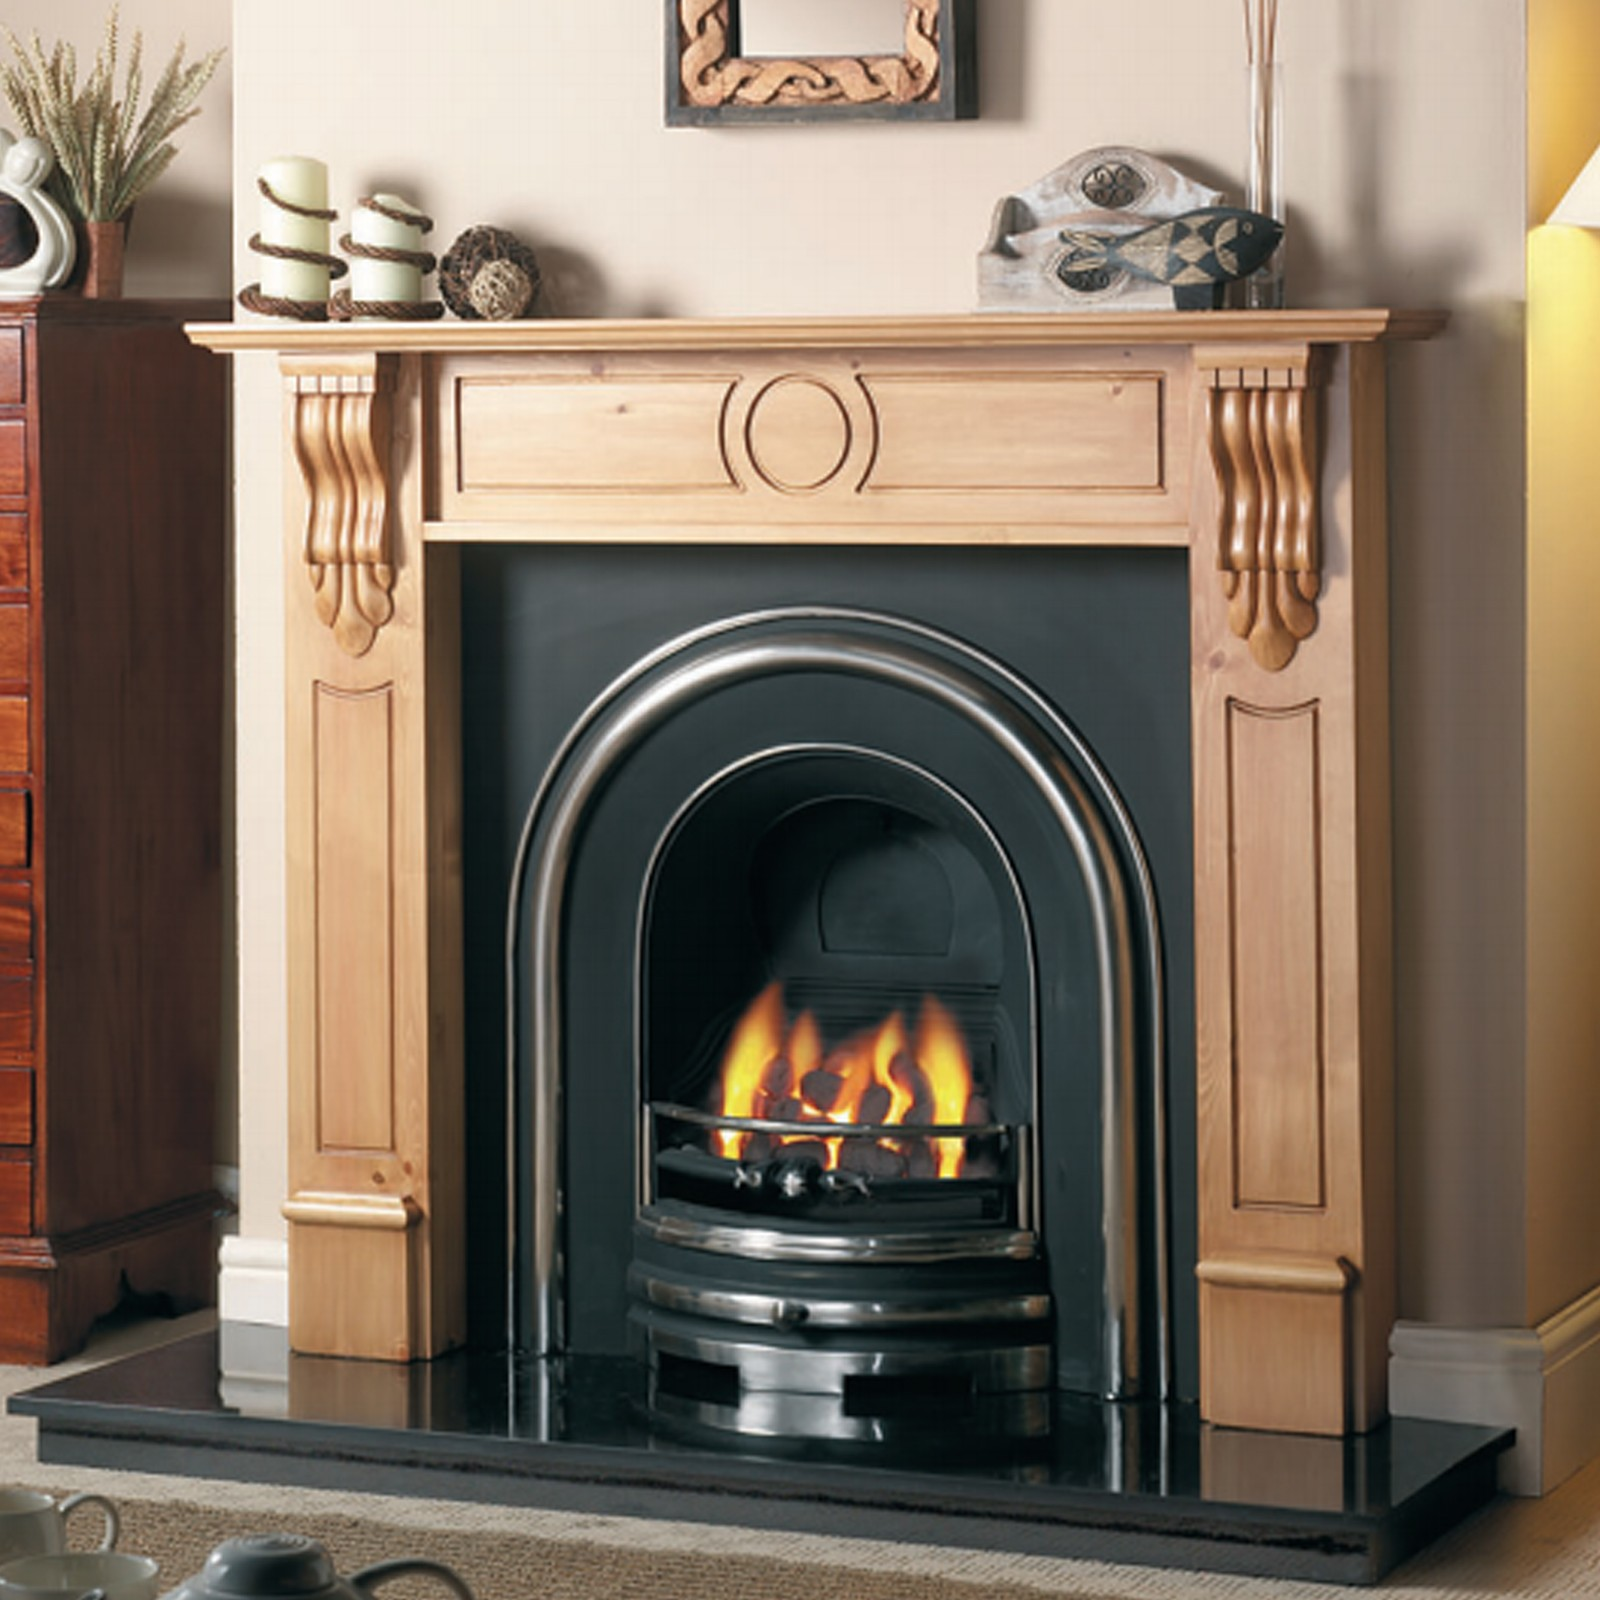 Electric Coal Fireplace Cast Tec Royal Arch Cast Iron Fireplace Insert